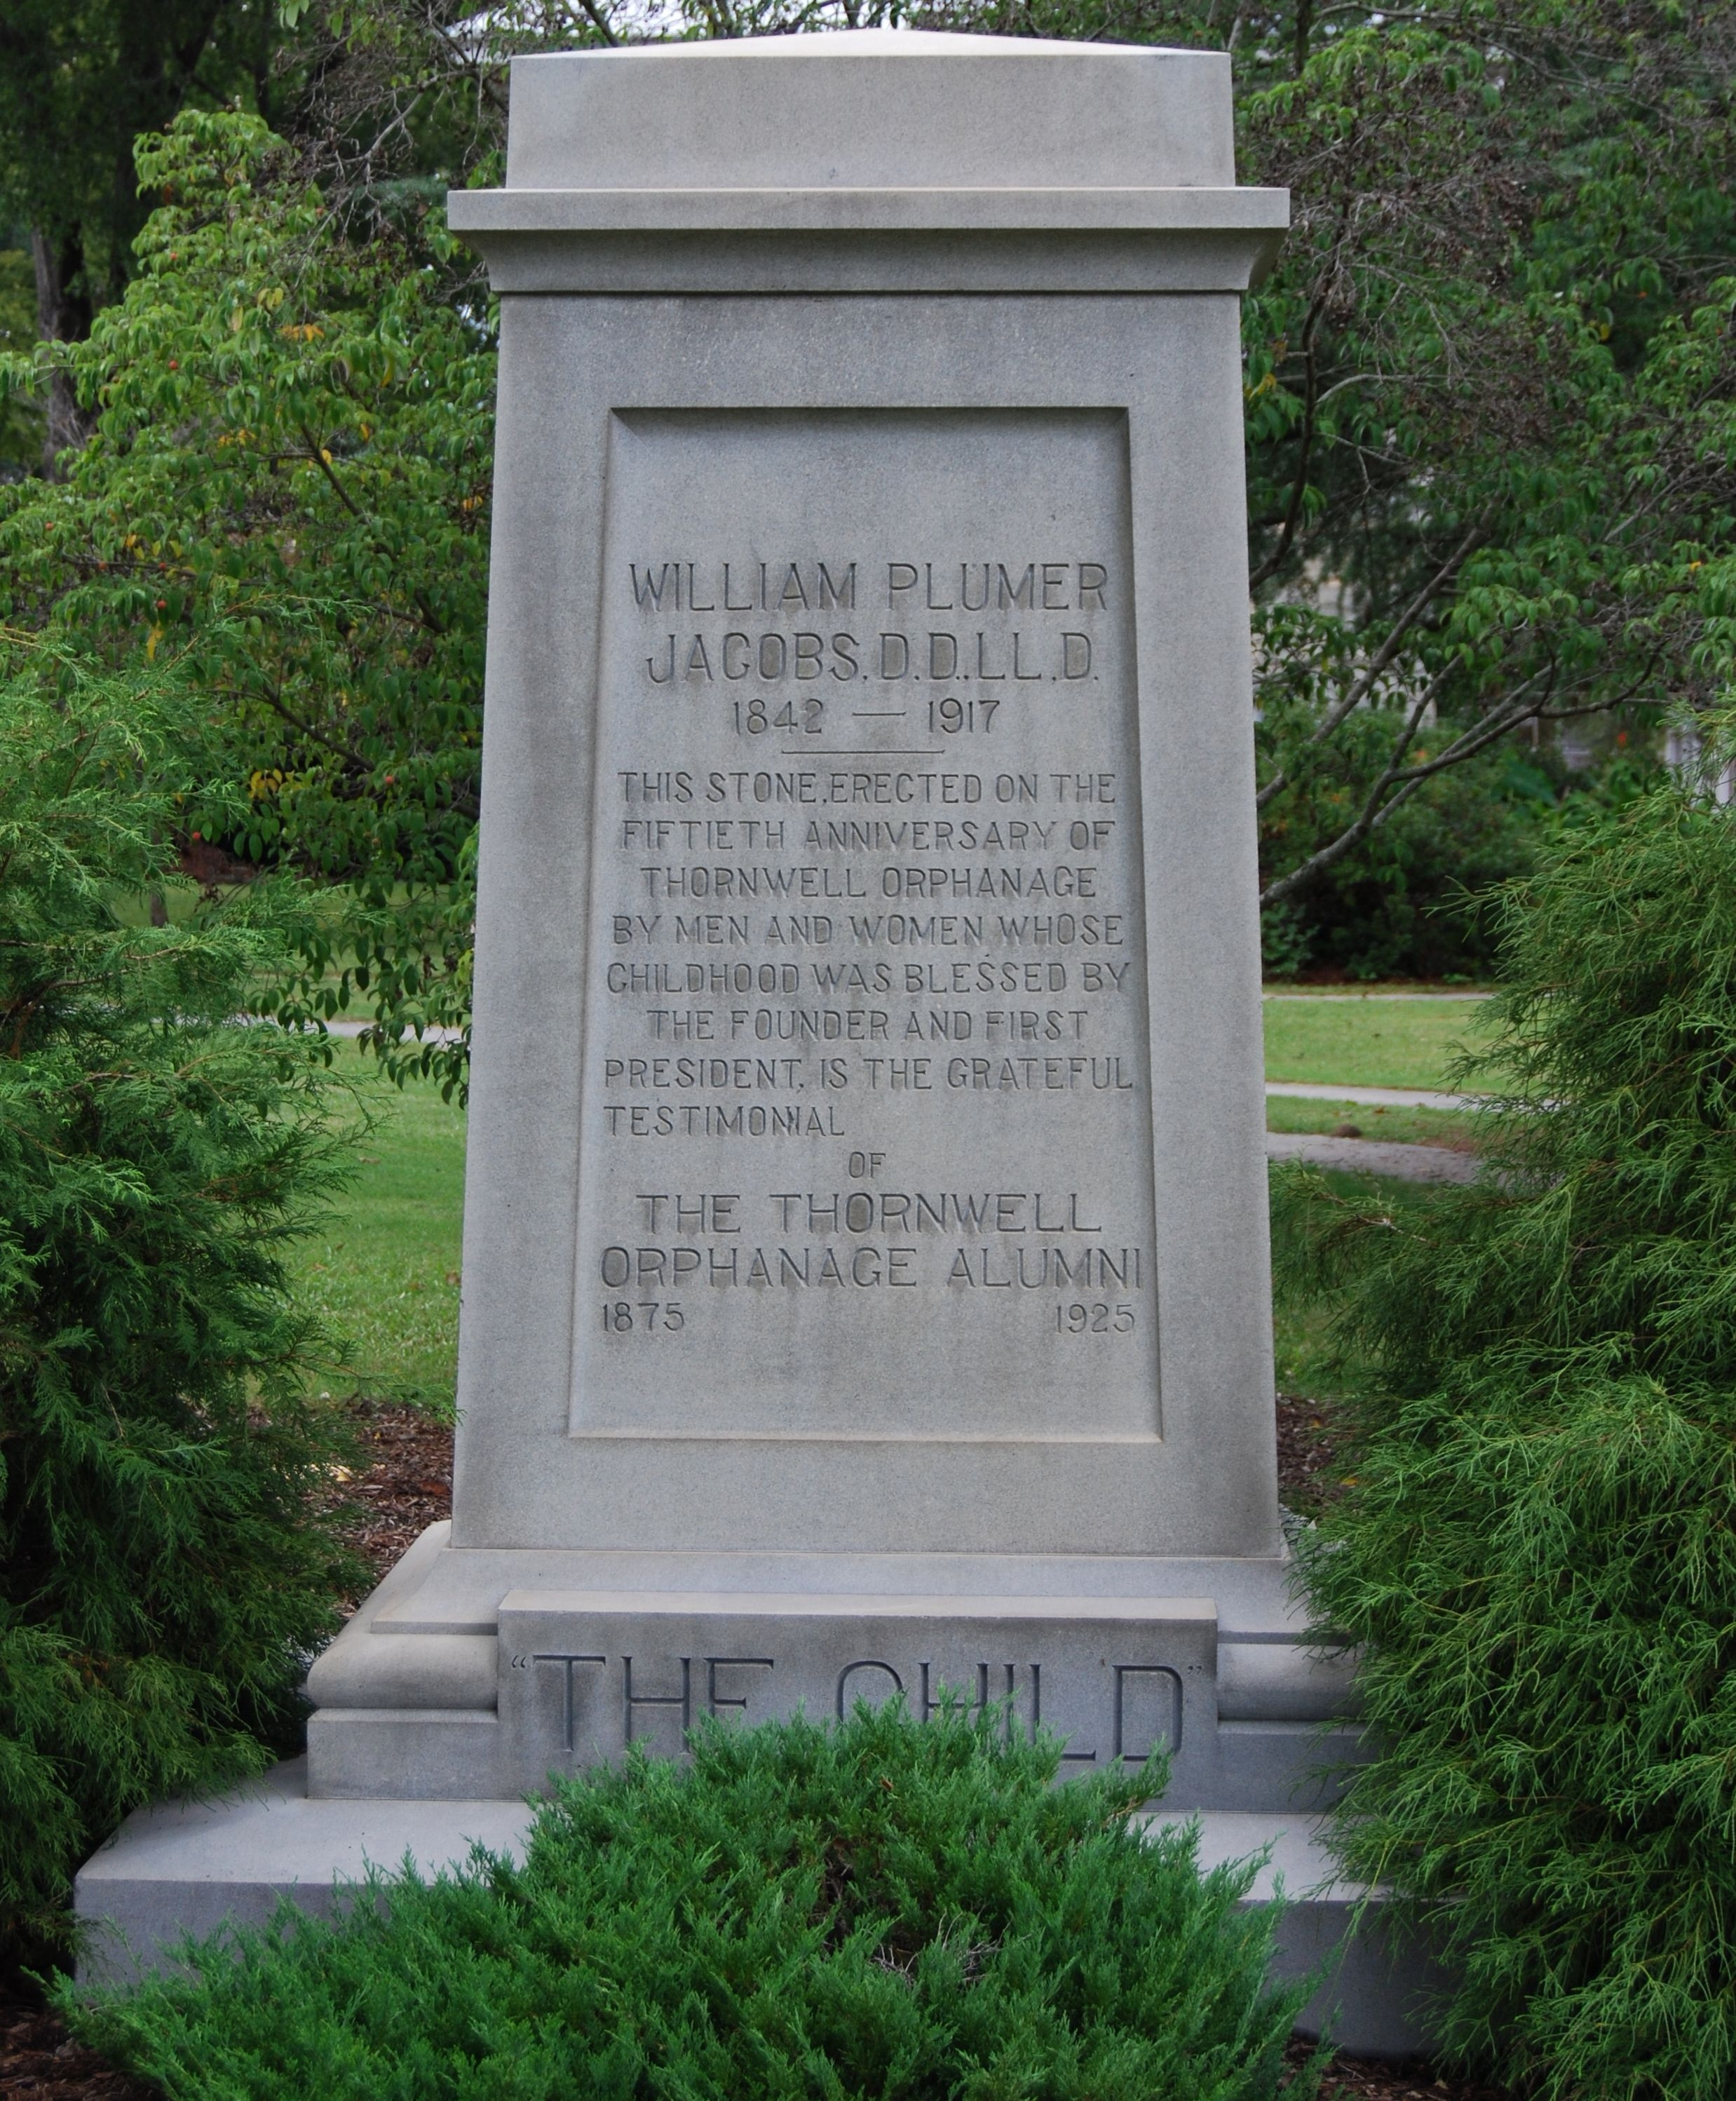 Monument to William Plumer Jacobs at Thornwell Orphanage.